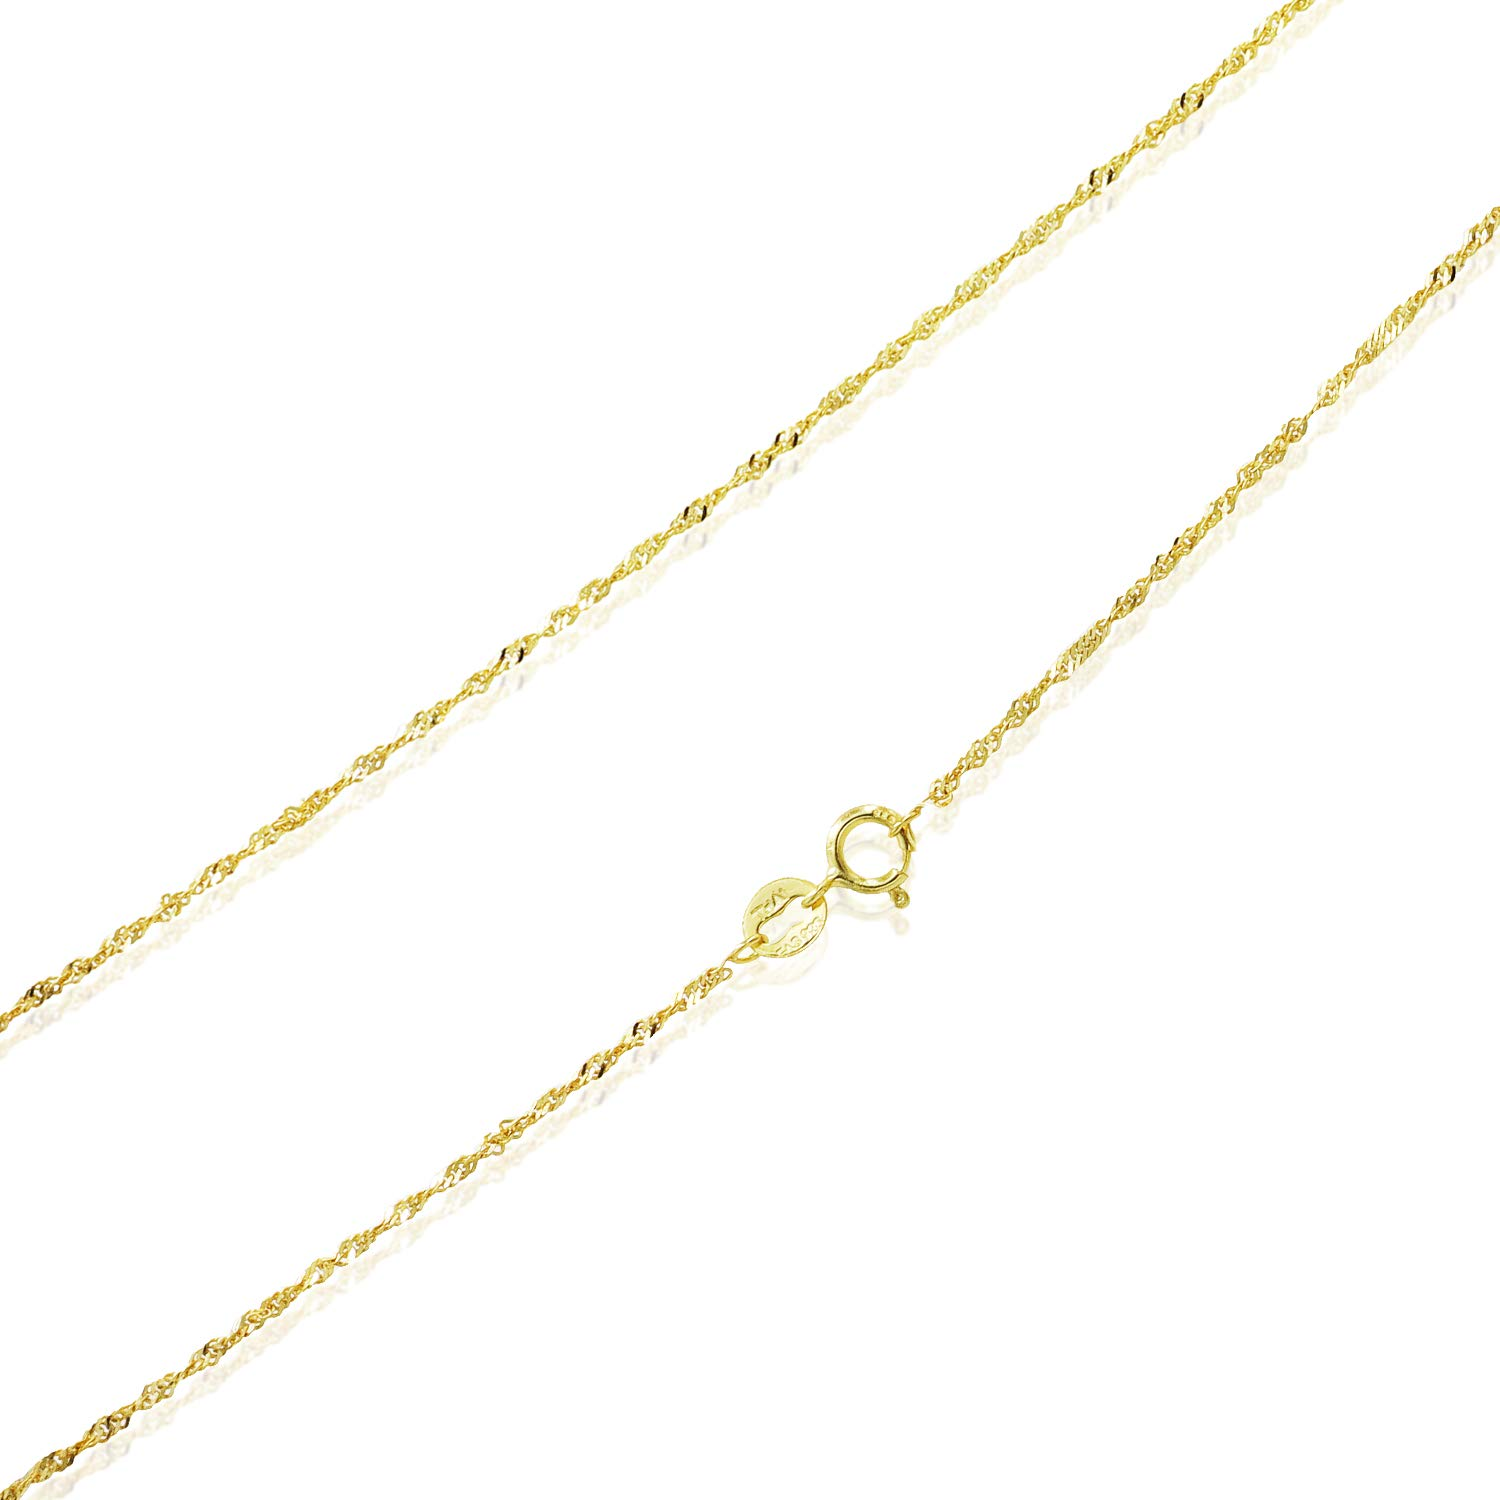 Sterling Silver 1mm Twisted Curb Singapore Rope Chain Anklet for Women Size 9 10 and 11 Italy